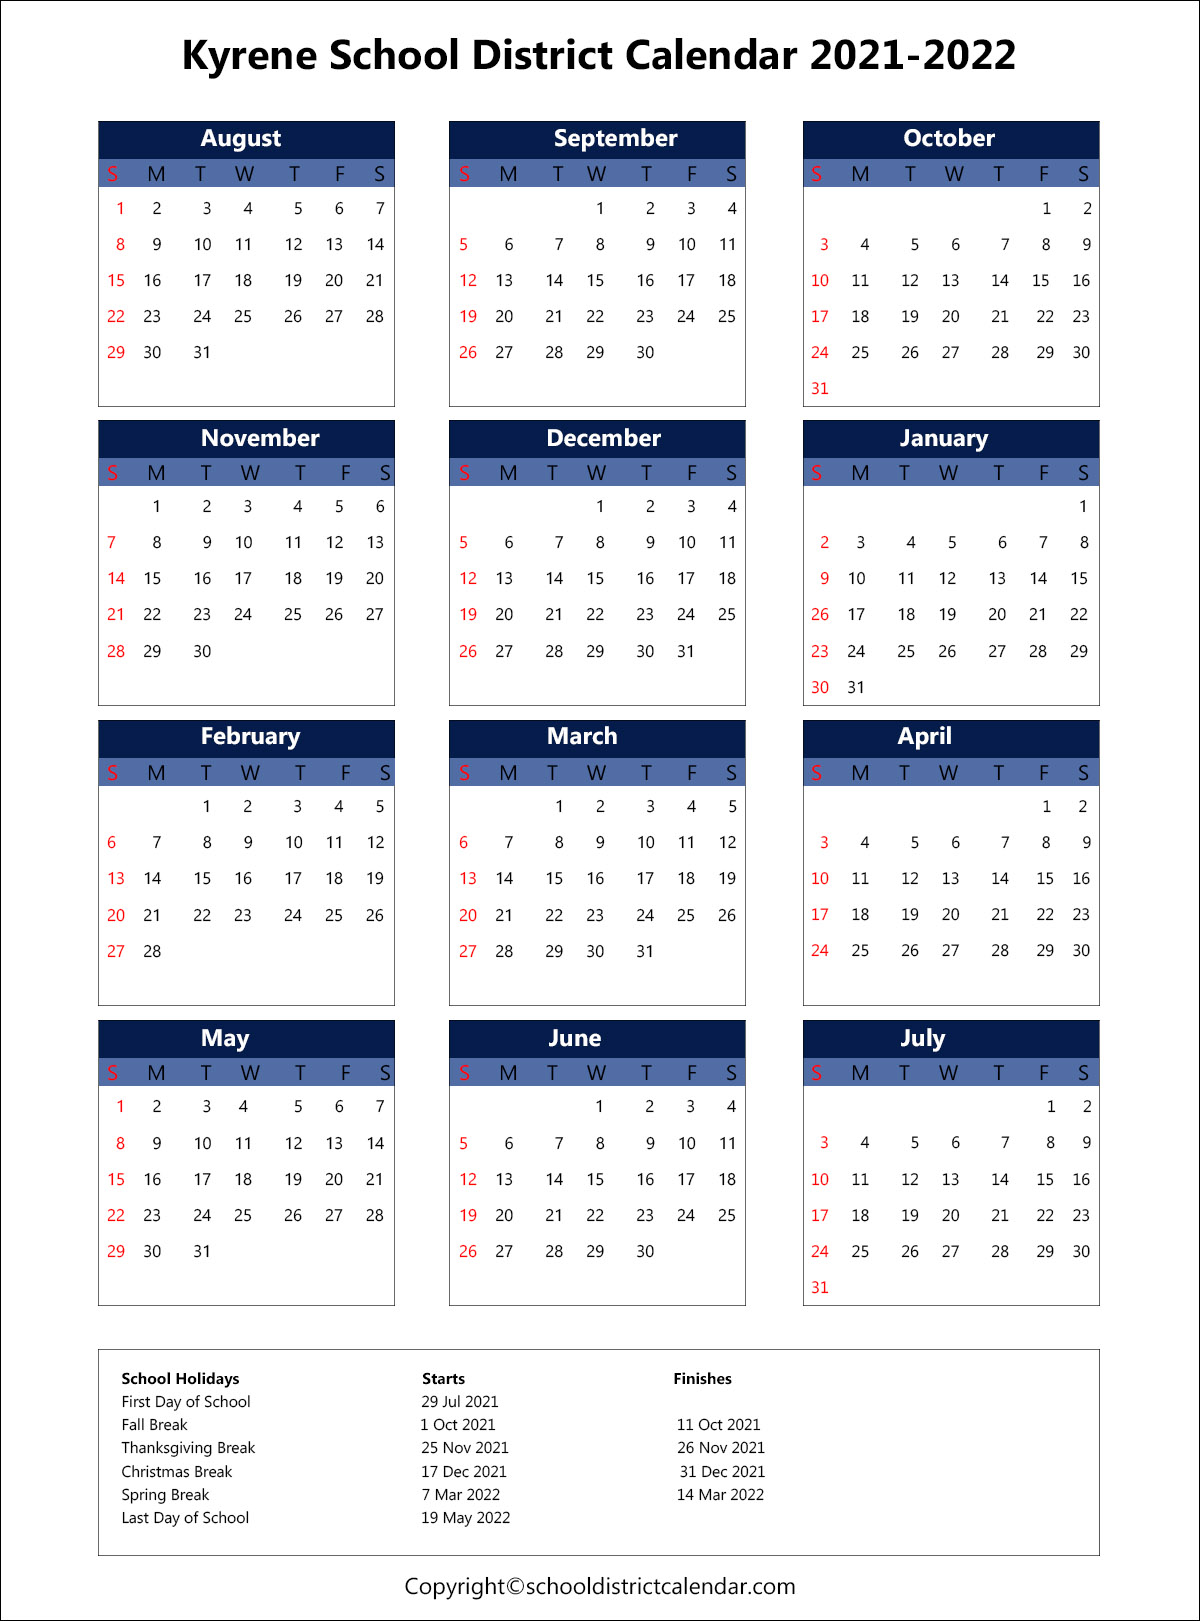 Kyrene School District Calendar 2021